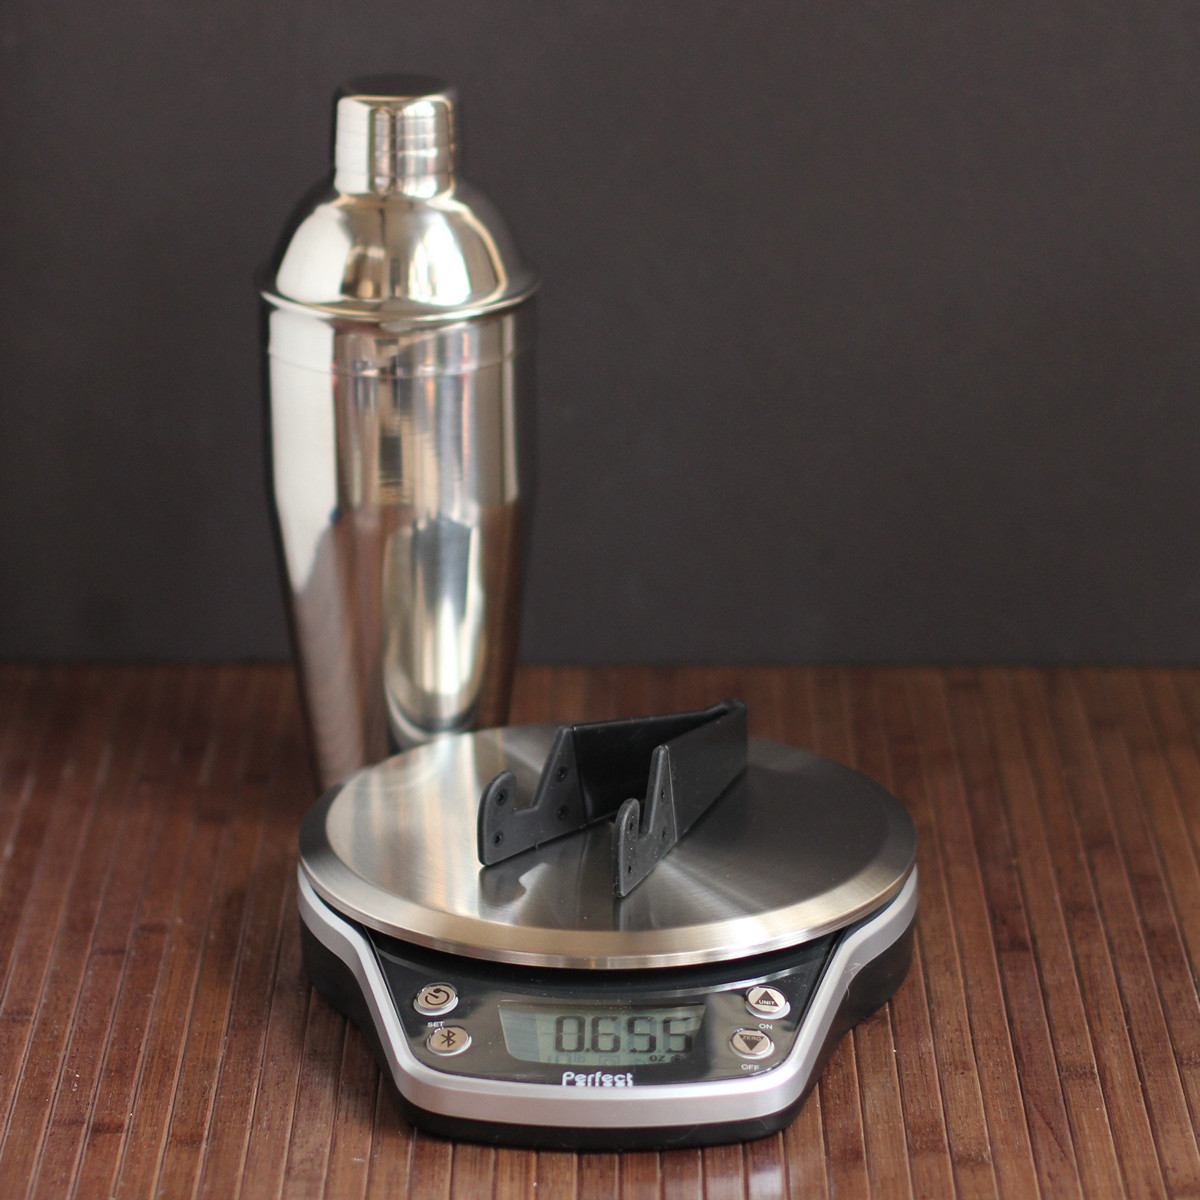 Cookistry 39 s kitchen gadget and food reviews perfect drink for Perfect scale pro reviews